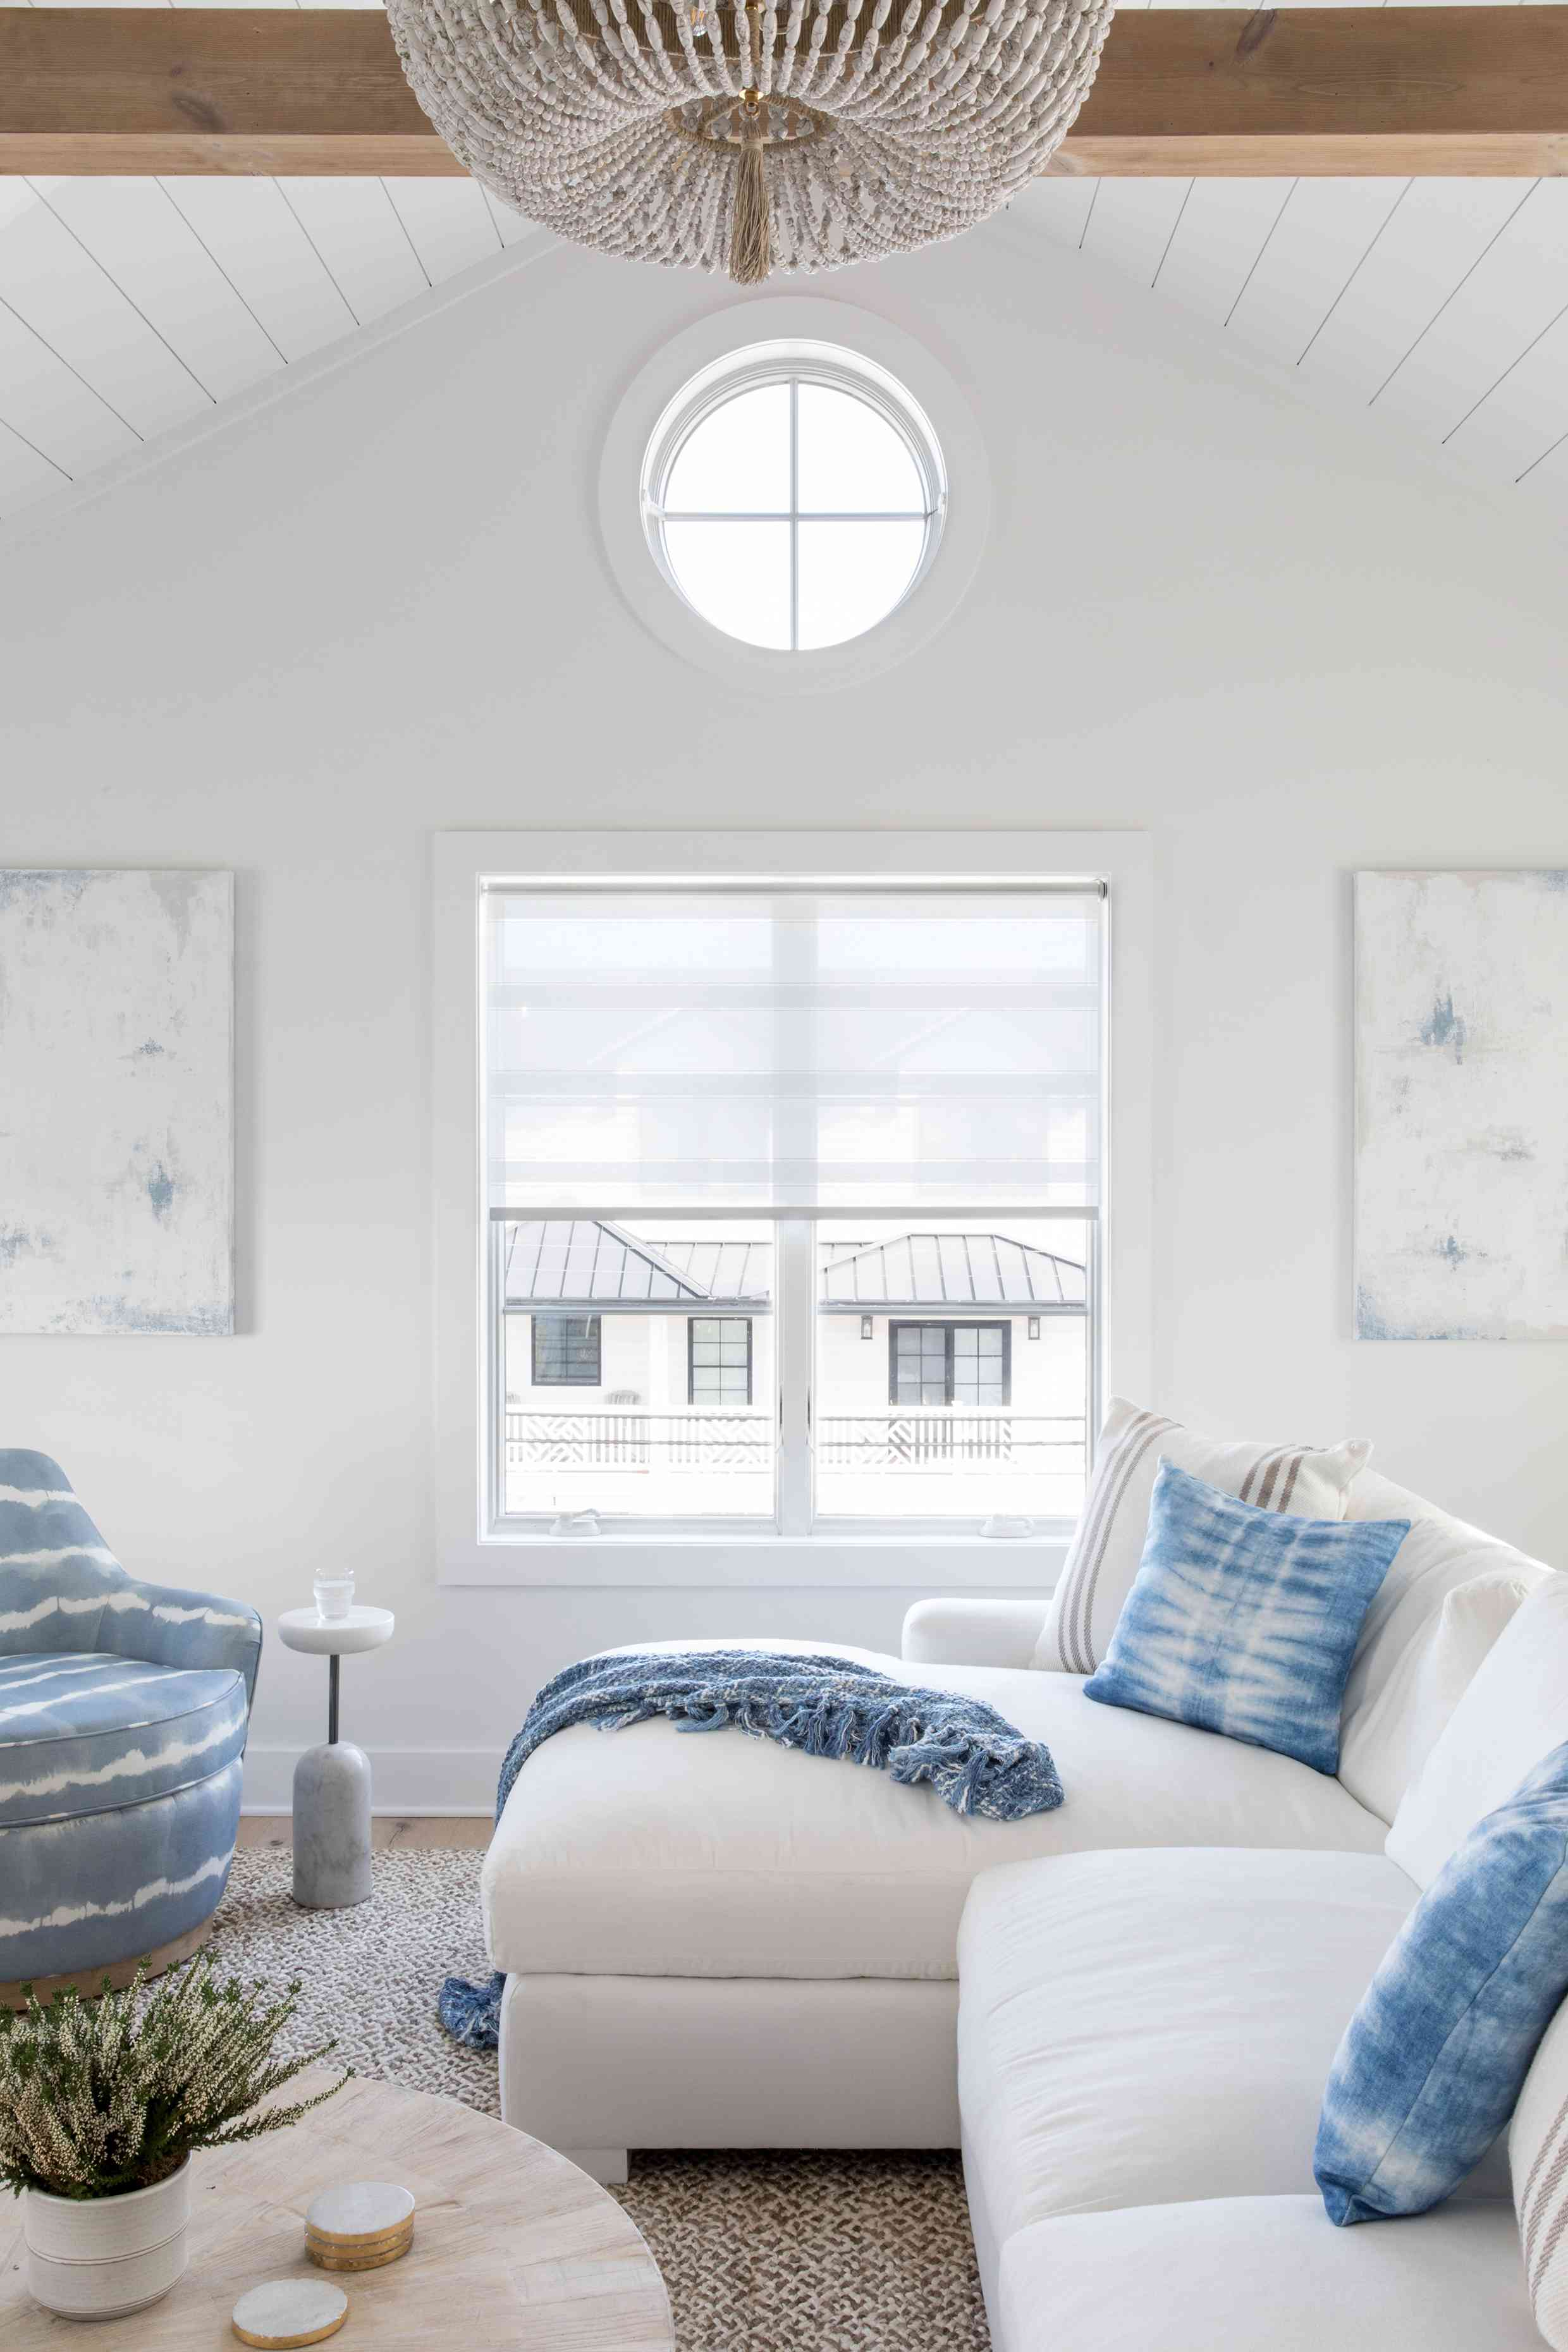 Karen B. Wolfe's Long Beach Island living area with portal windows and raised ceilings